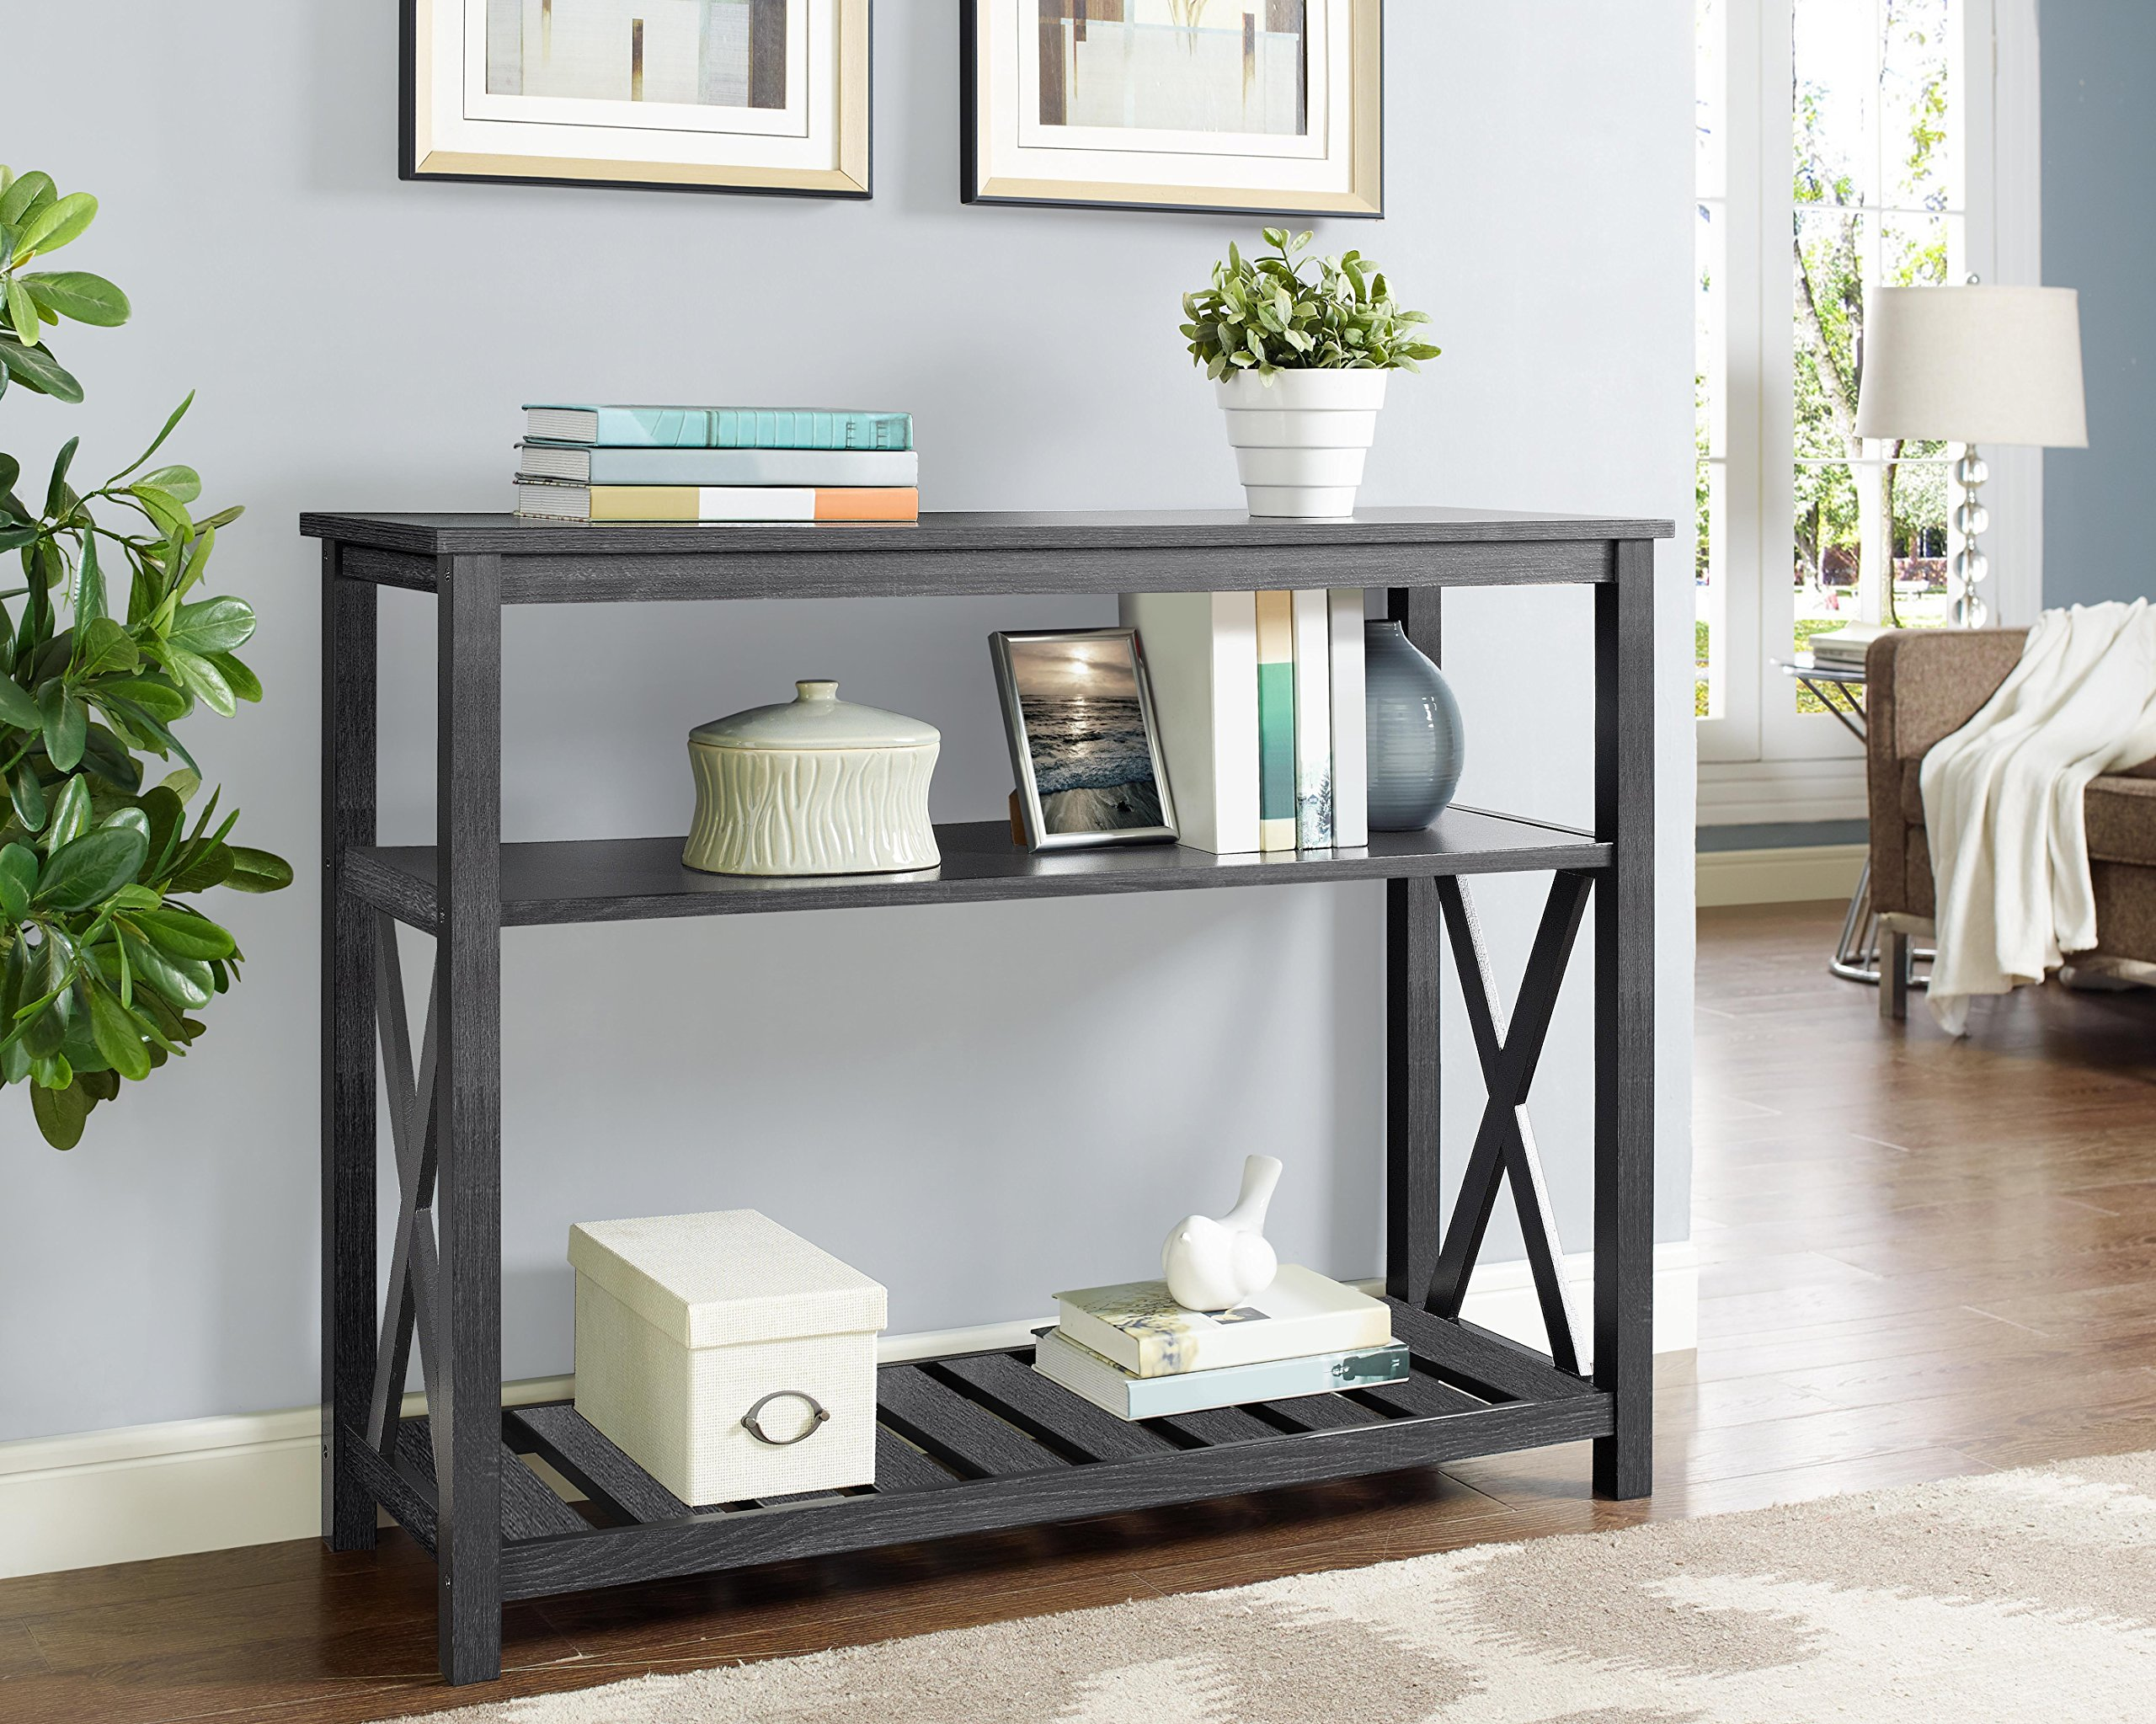 Weathered Grey Finish 3-Tier Occasional Console Sofa Table Bookshelf X-Design and Slats